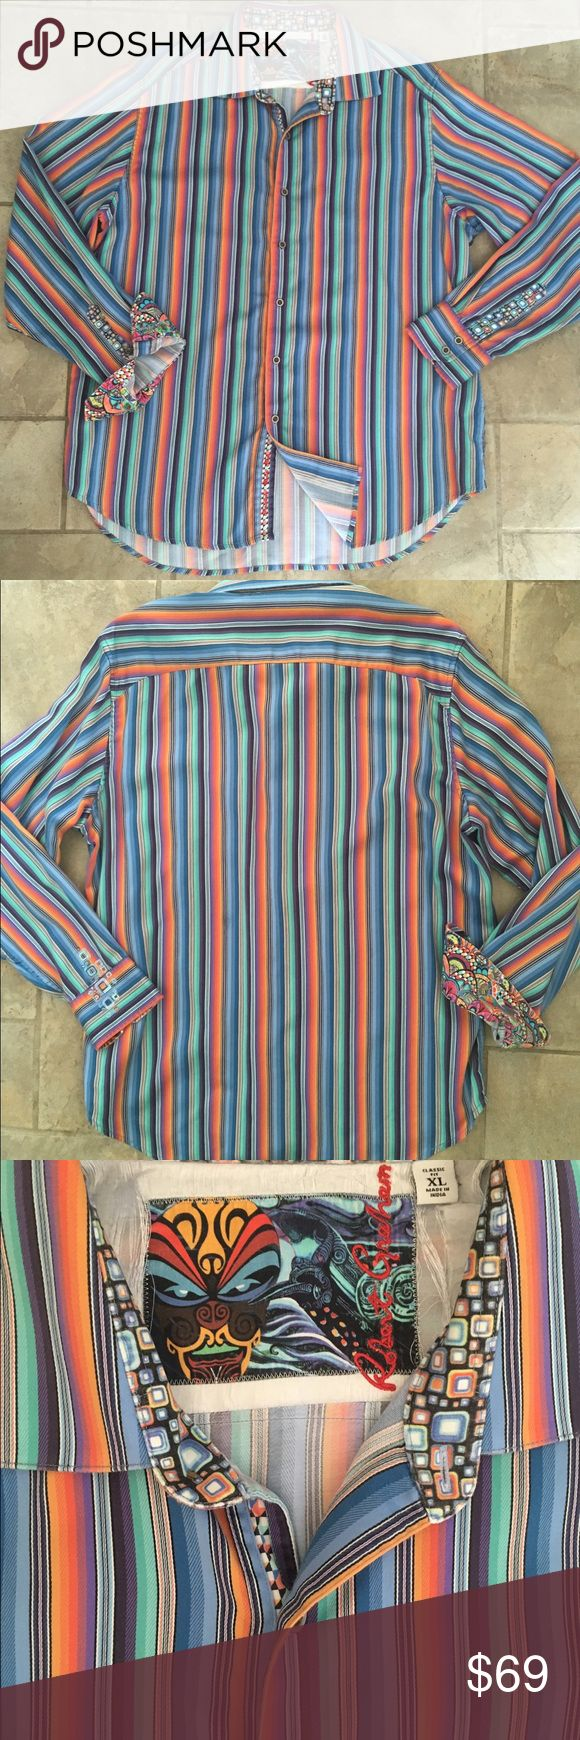 Robert Graham Men's Classic Fit Shirt Multi  XL Robert Graham Men's Sports Shirt  Color-Multi  Size XL Classic Fit  Contrasting details in cuffs and collar Wisdom, Knowledge, Truth embroidered on the Shirt tail This Robert Graham Shirt is gently used. Overall condition is extremely good, only flaw is on the inside yoke which is unseen when worn (see photos)Otherwise, there are no rips, tares, holes, or stains. No missing buttons Retail MSRP -$248 Robert Graham Shirts Casual Button Down…